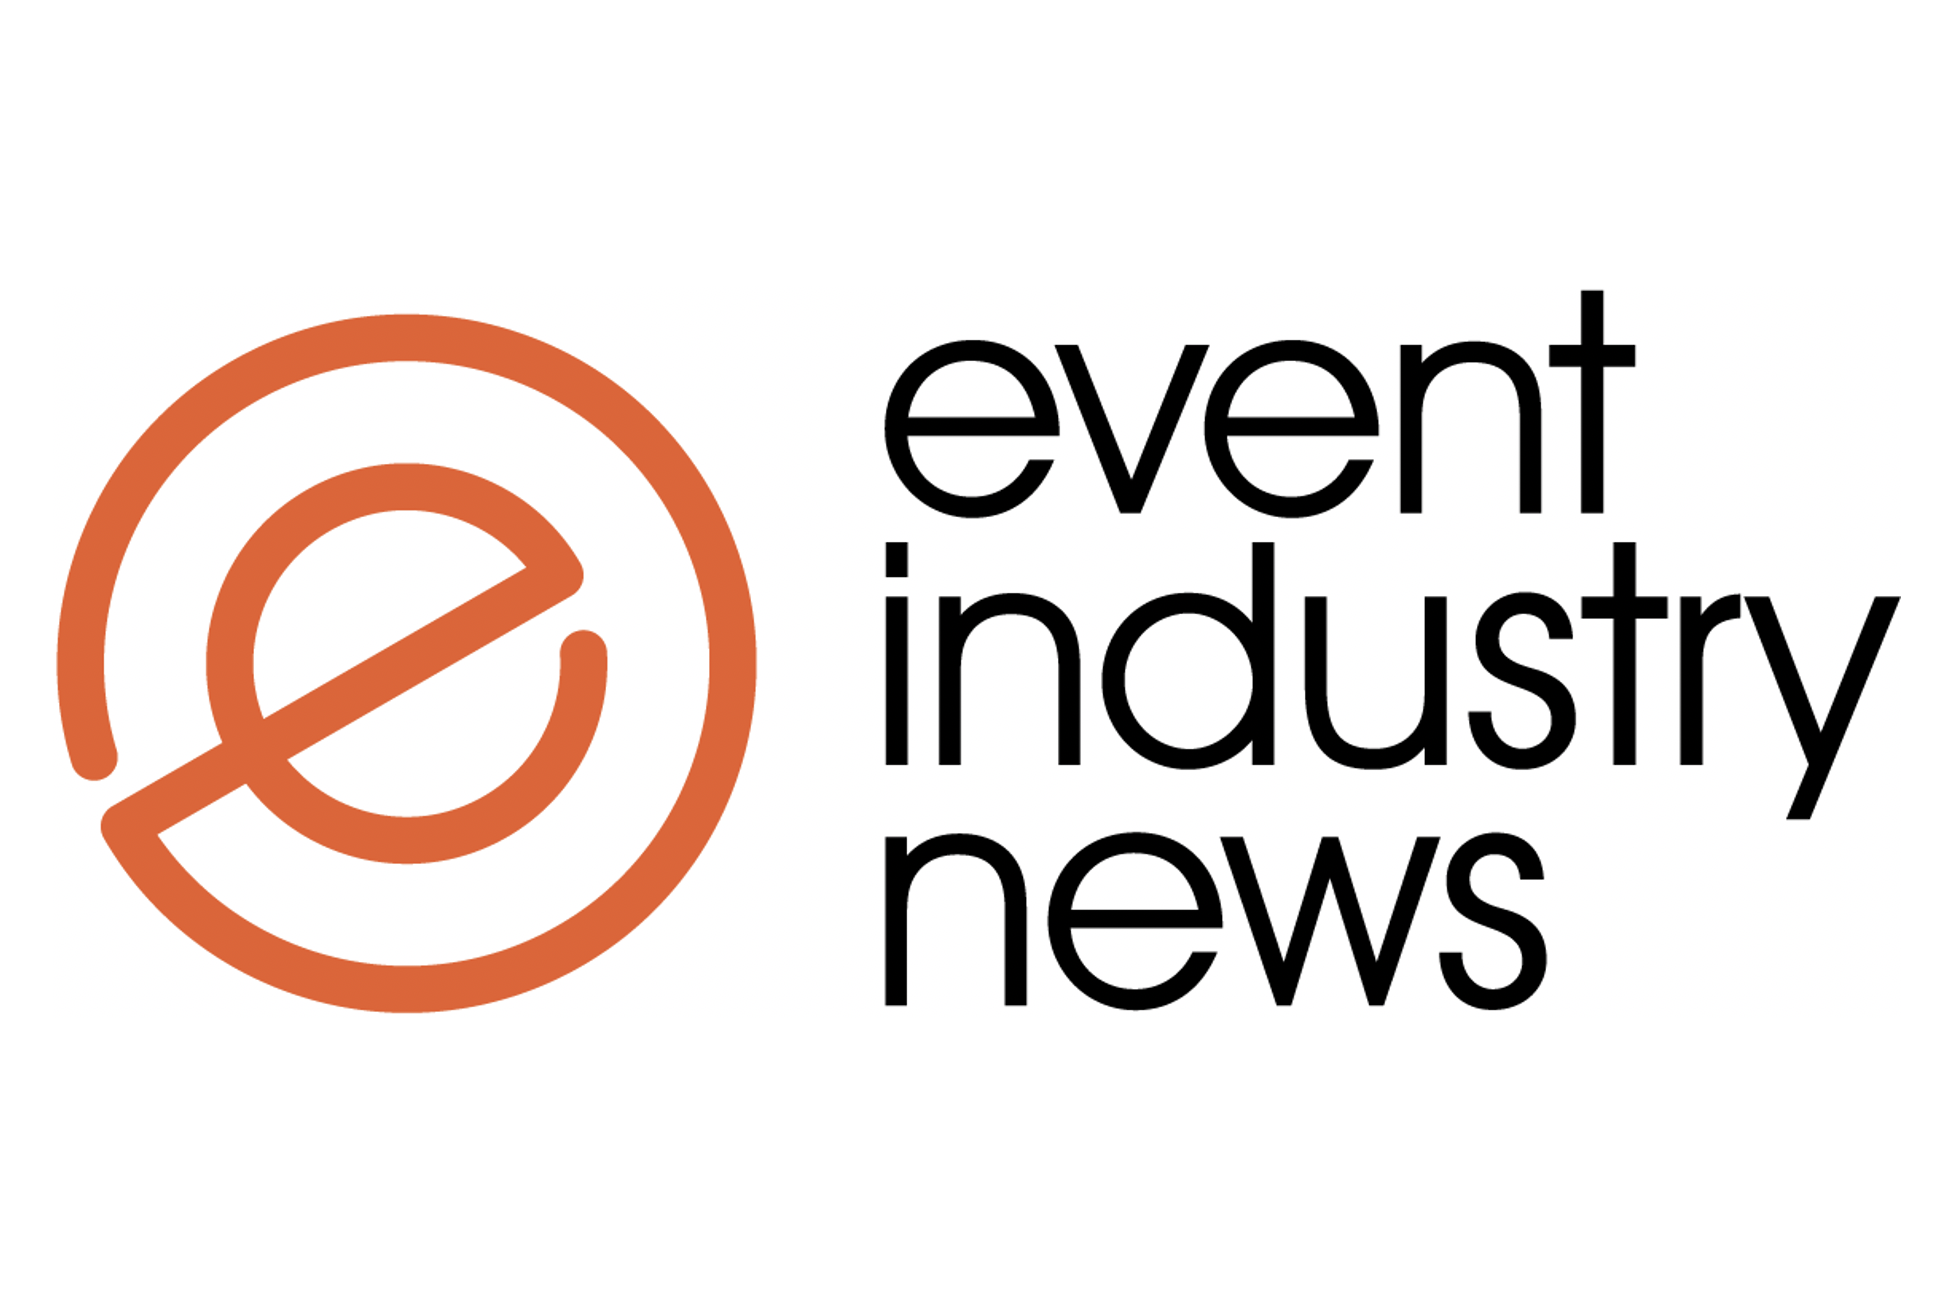 Open Audience in Event Industry News Directory providing event technology event management and event consultancy